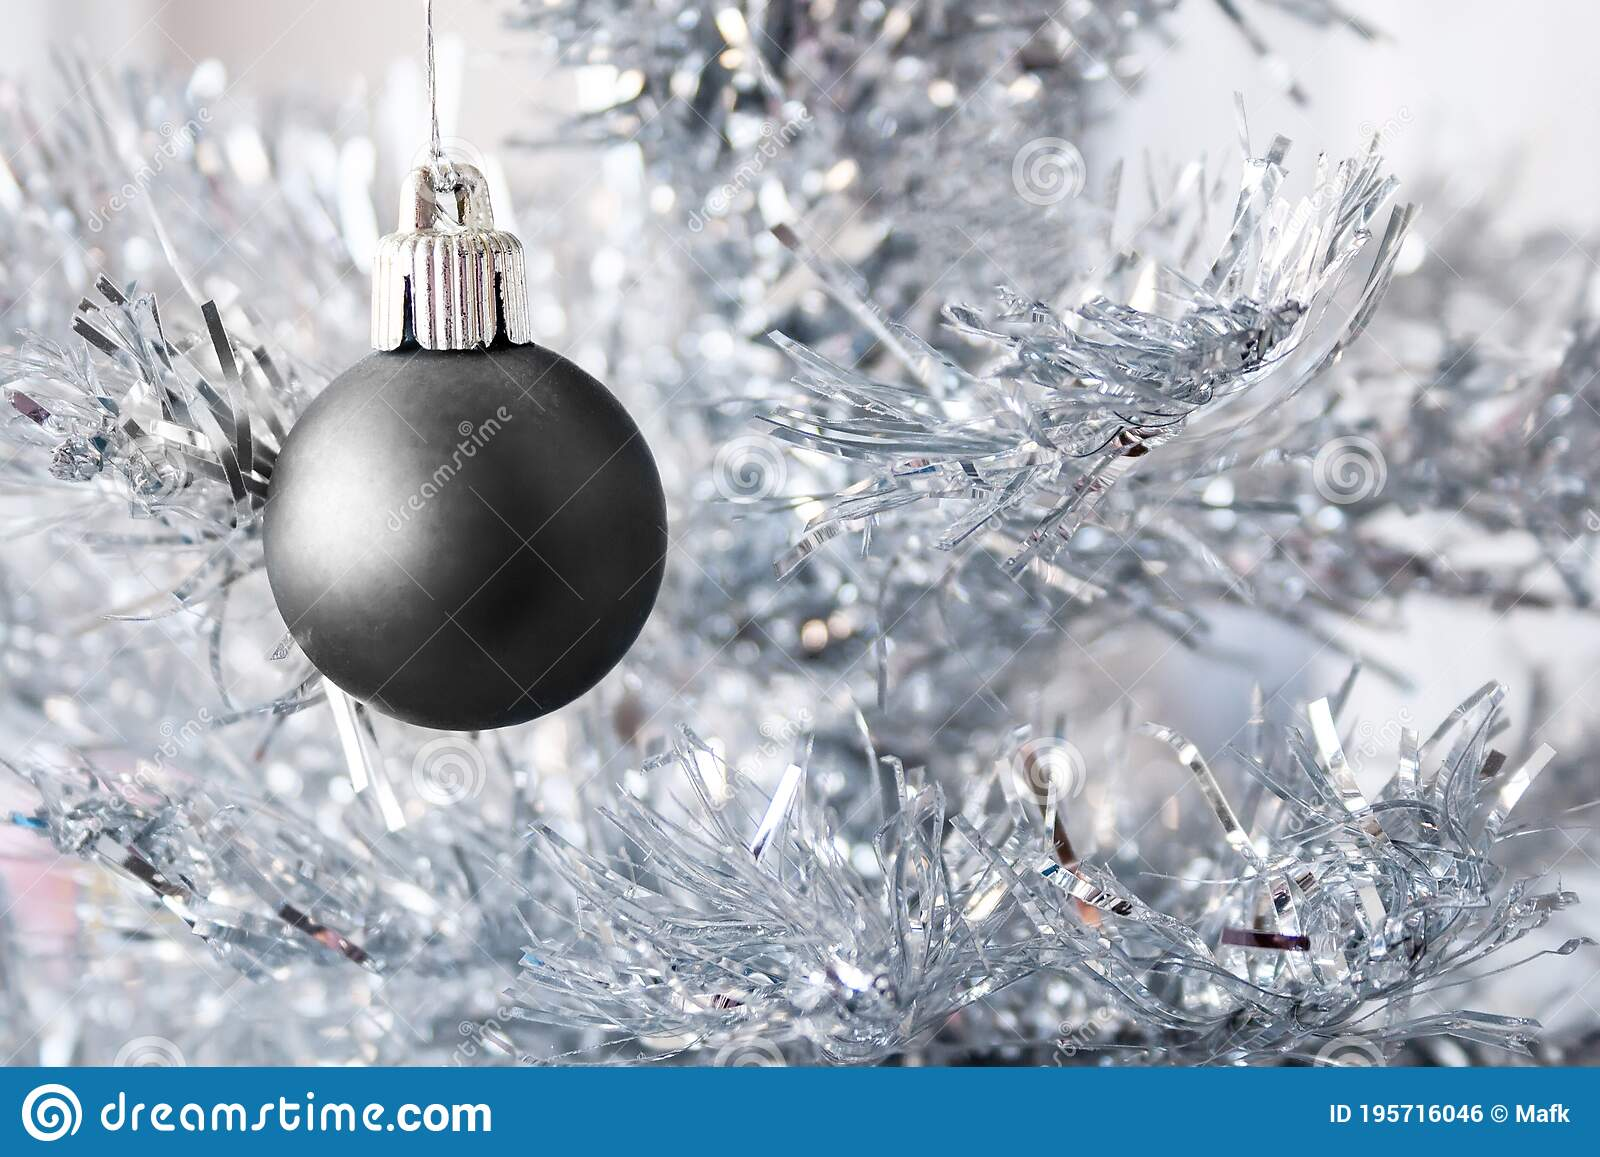 Black Matte Metallic Ball Hanging On A Silver Artificial Christmas Tree With Copy Space Selective Focus Blurred Background Stock Photo Image Of Celebrate Ball 195716046